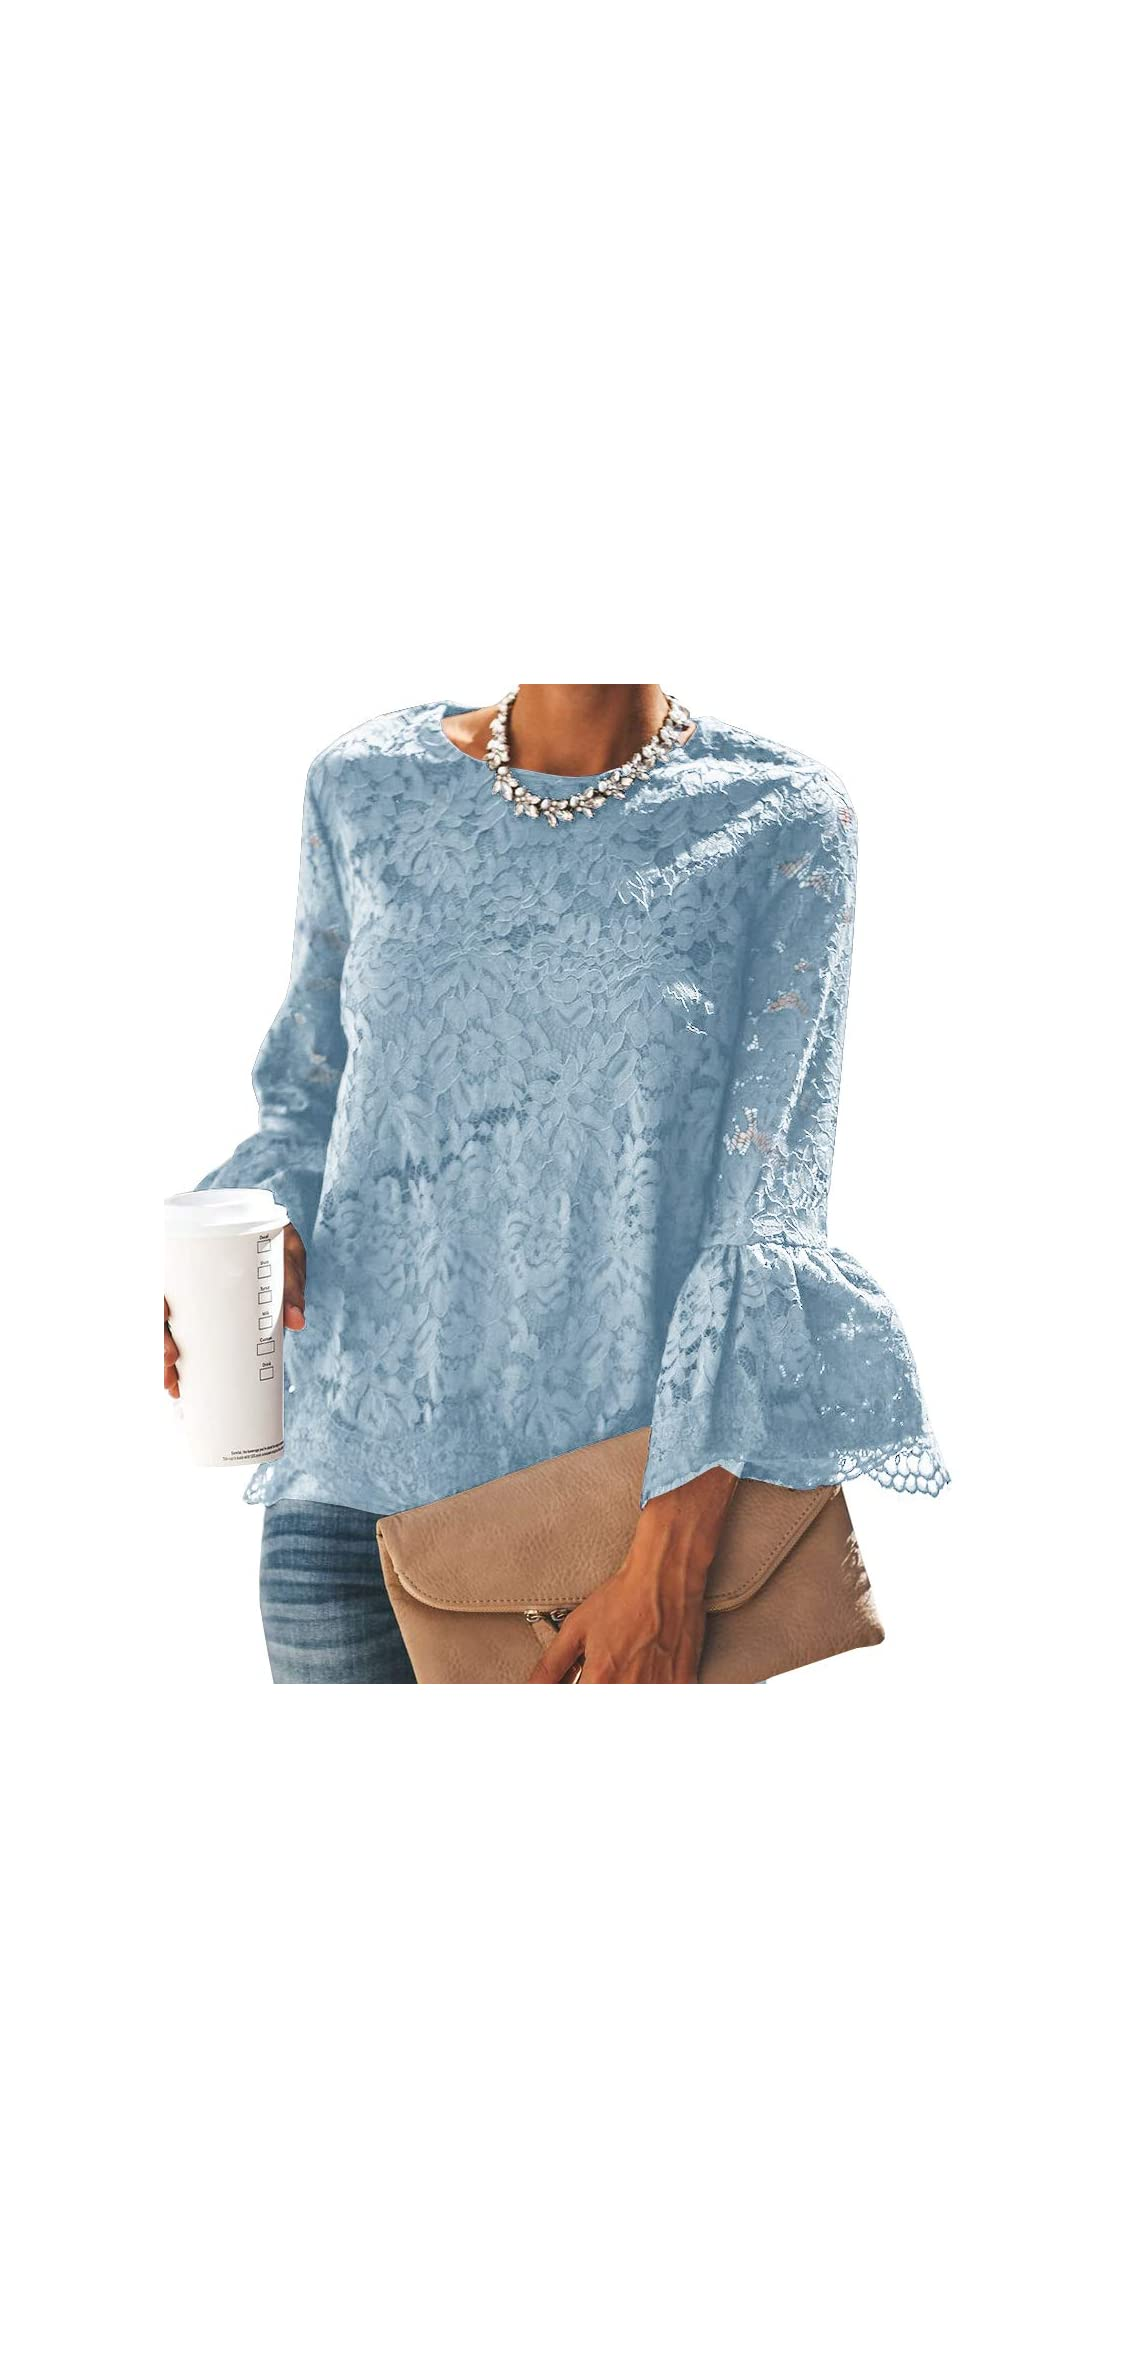 Womens Floral Lace Blouse Bell Sleeve Vintage Lace Tops